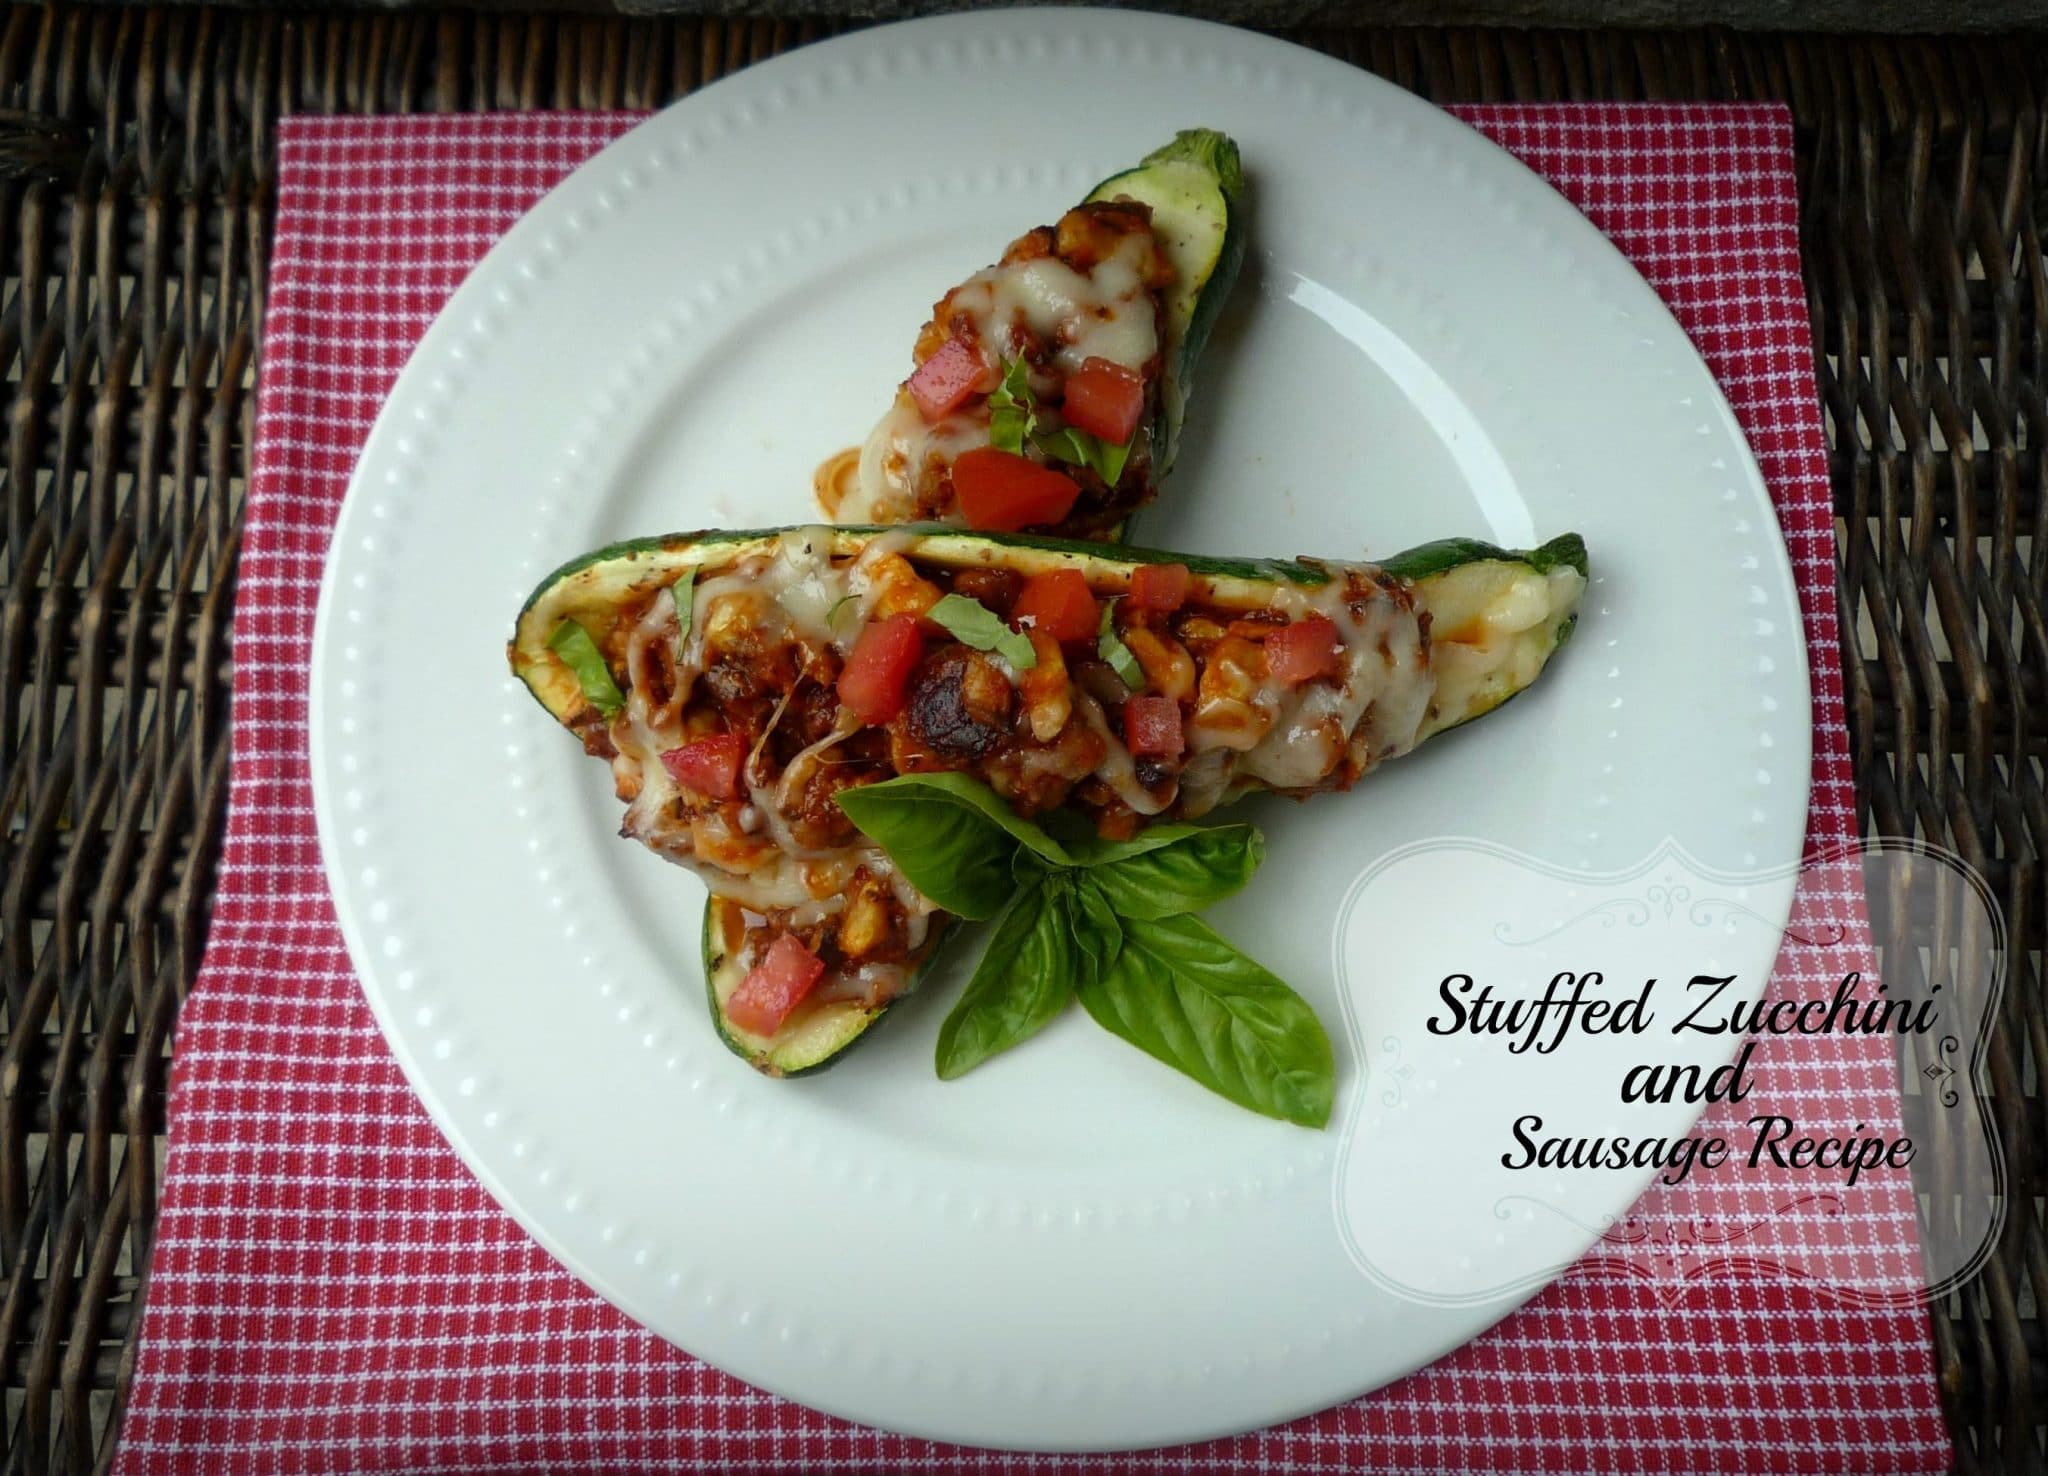 Stuffed Zucchini with Sausage Recipe